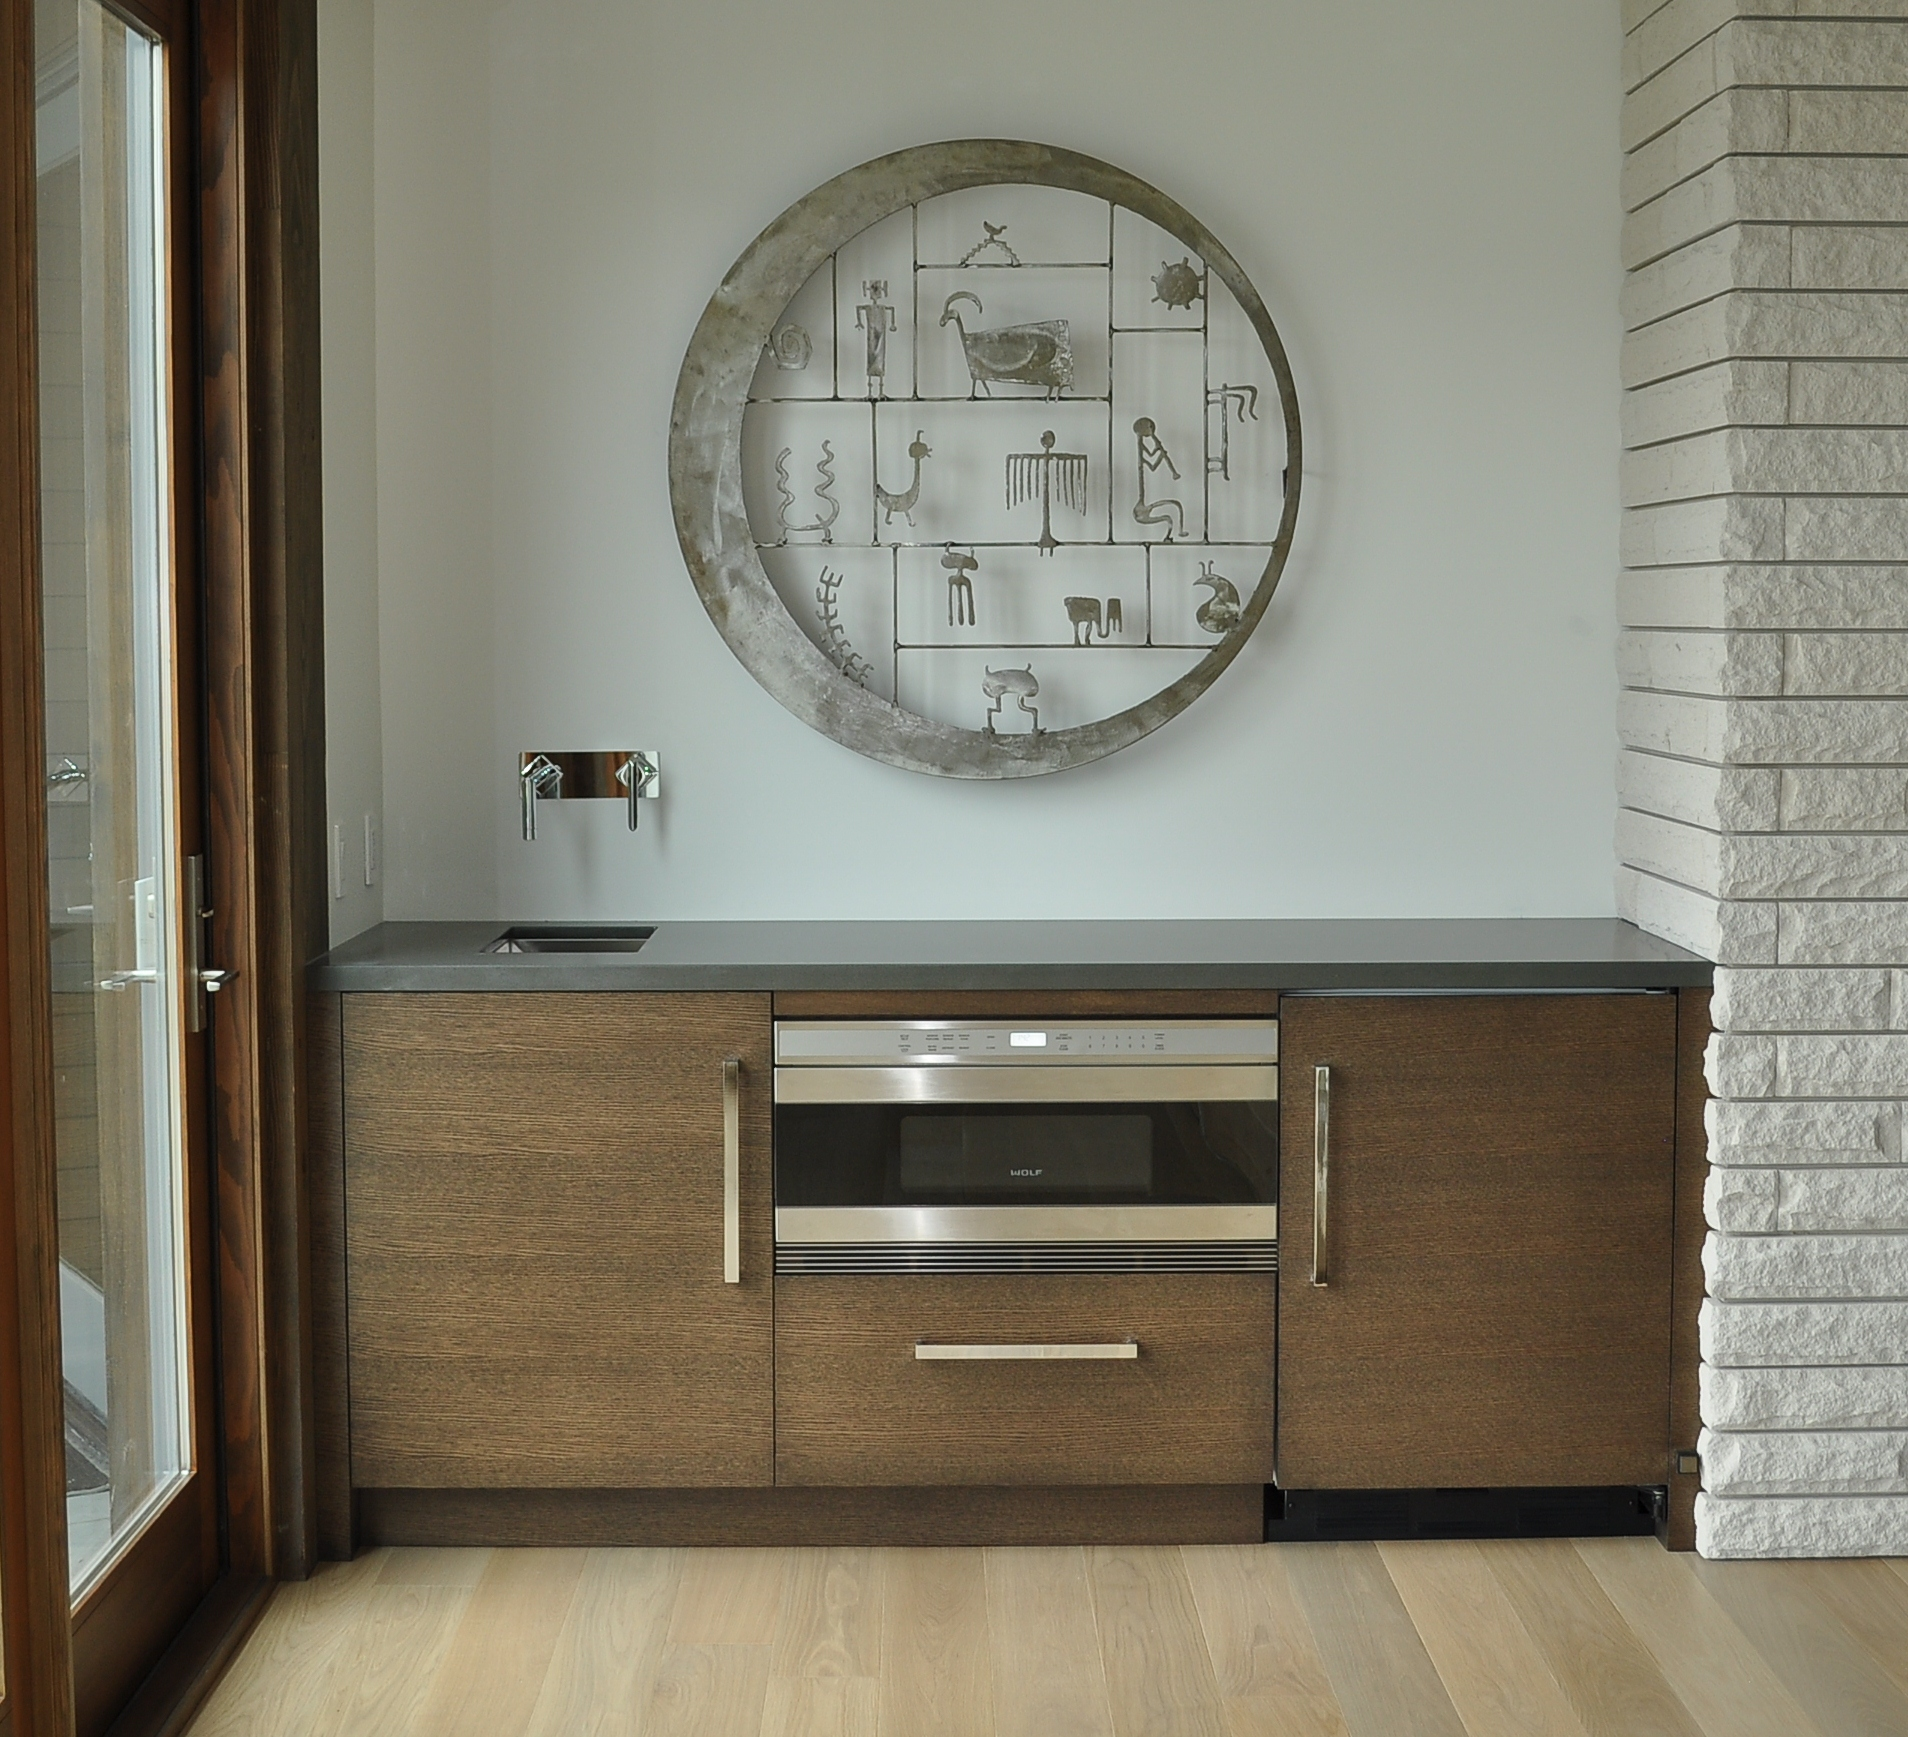 contemporary-style-bar-cabinetry.JPG